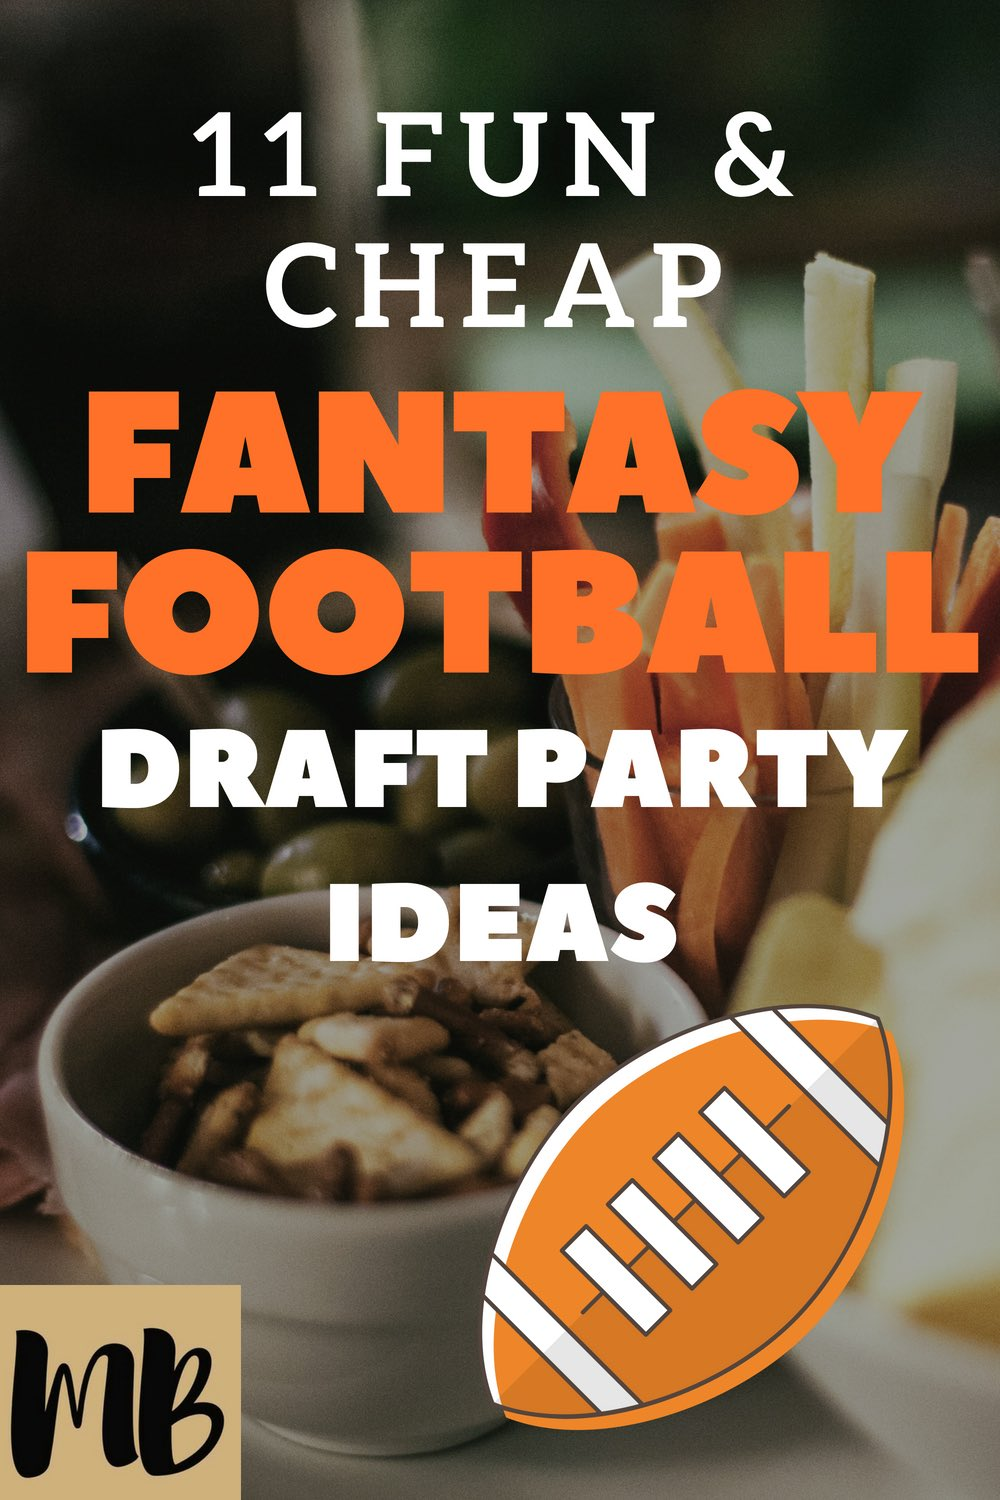 FANTASY FOOTBALL DRAFT PARTY IDEAS | FANTASY FOOTBALL PARTY | FANTASY FOOTBALL PRIZES